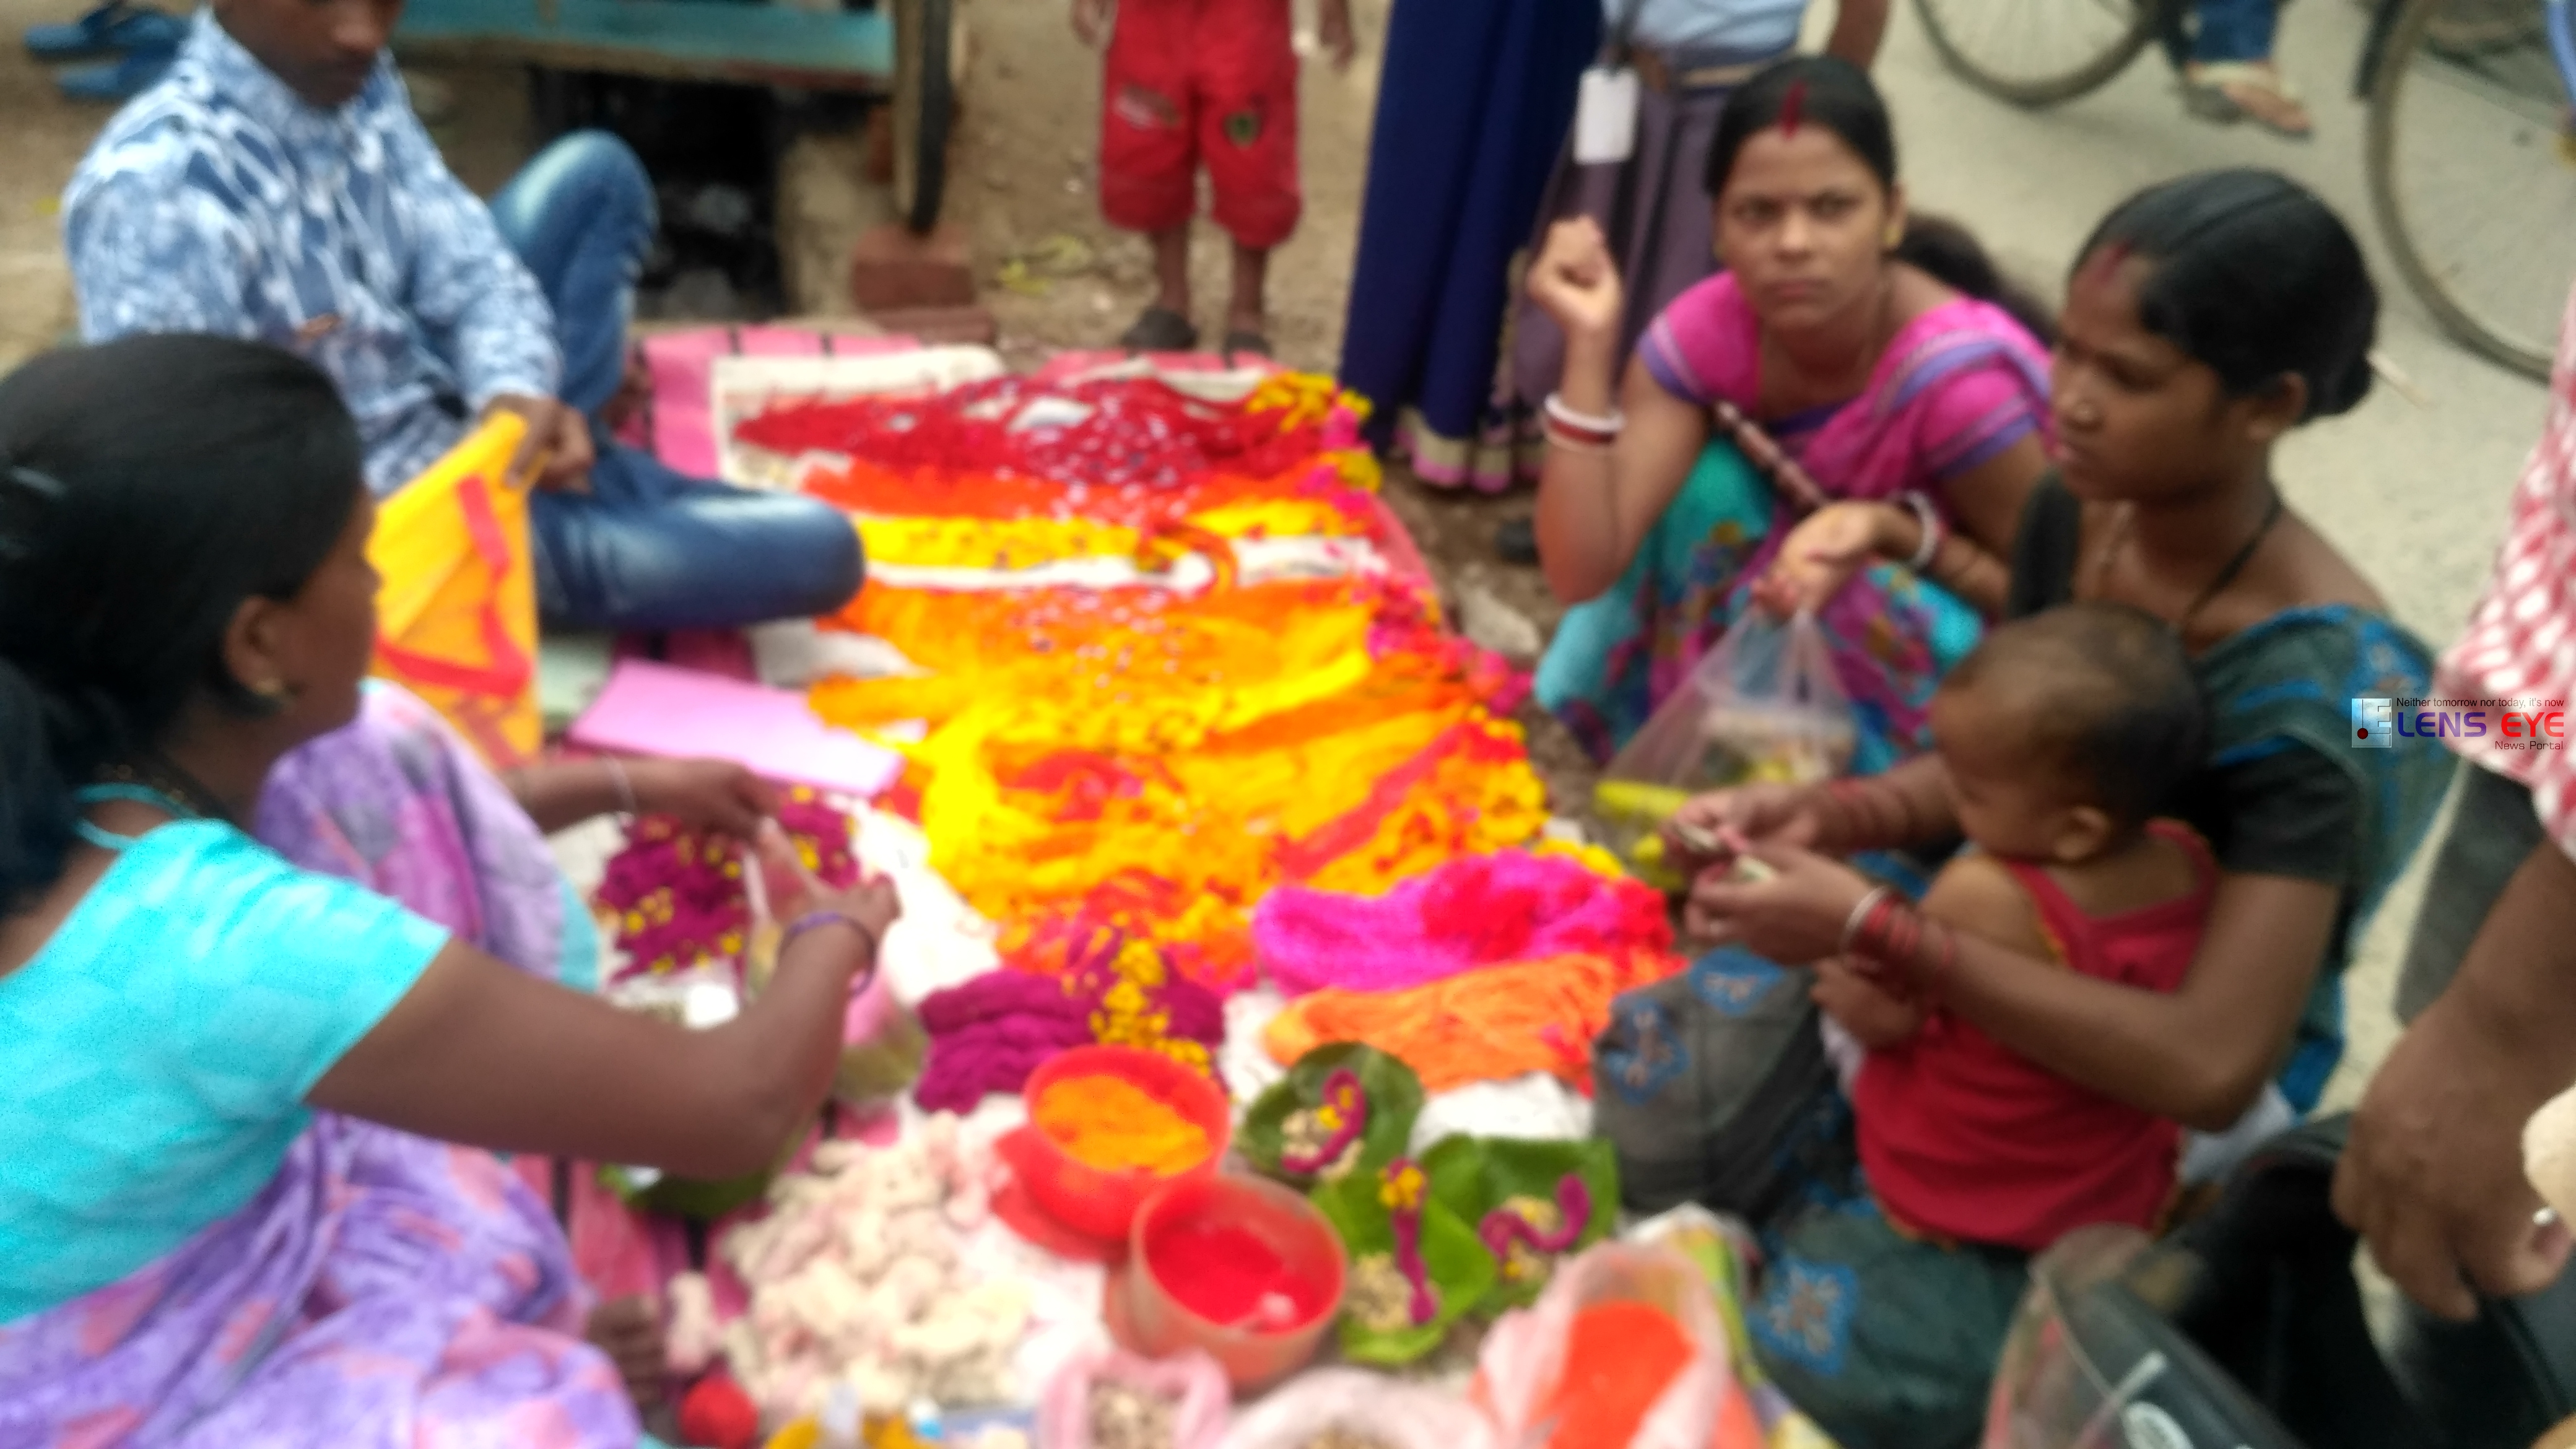 Devotees purchasing puja items ahead of Jivitputrika vrat puja festival